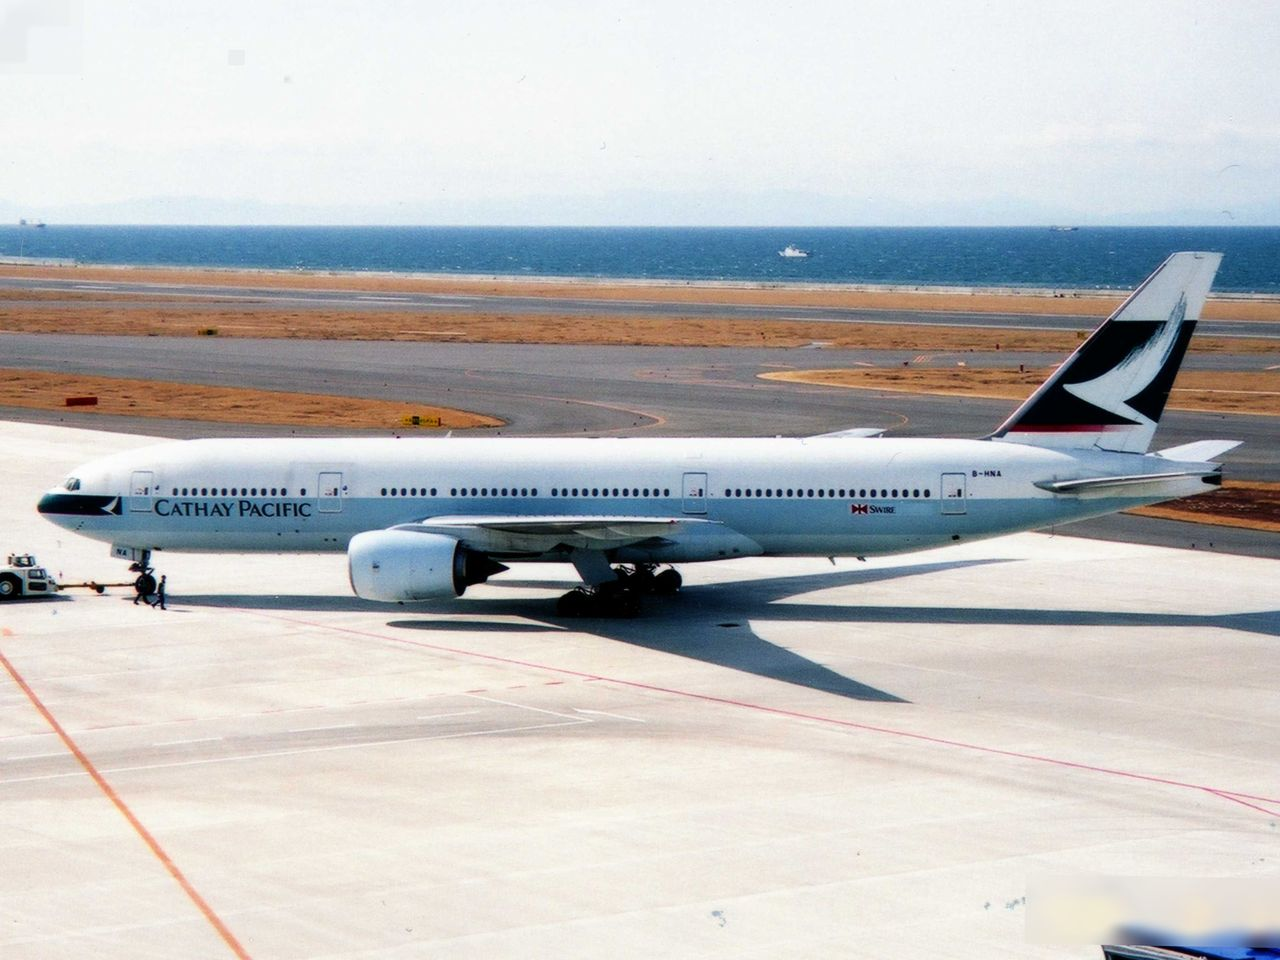 cathay pacific company history fleet and Cathay pacific (iata: cx / icao: cpa) is an airline based in hong kong founded in 1946 currently operating a fleet of 146 aircraft.